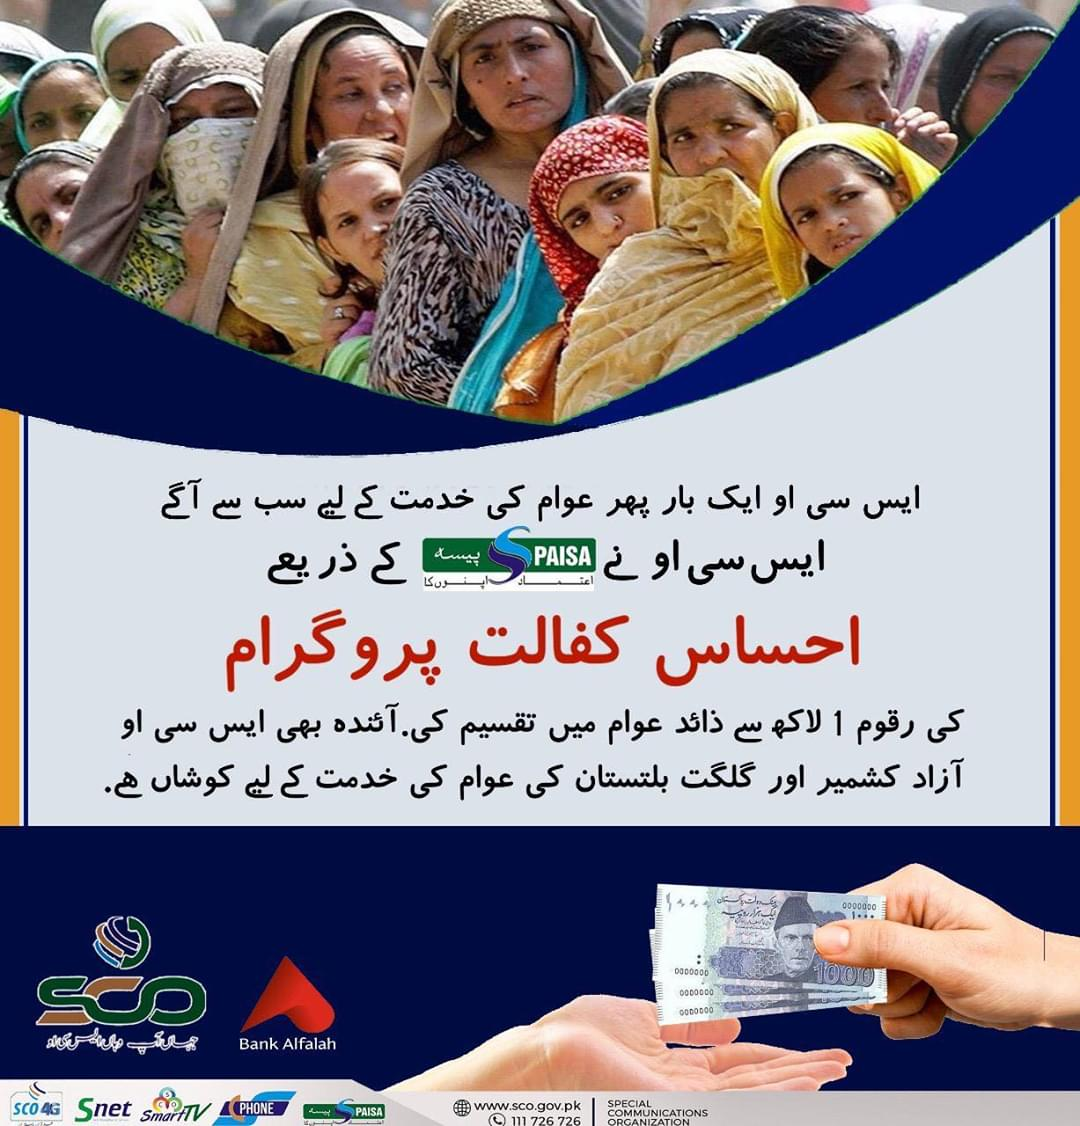 SCO is showing faces from KP in this pic and advocating that they are serving people of #GB. Common show us performance instead of Old pics of #KP #Internet4GilgitBaltistan. #Gilgit #Baltistan #SCO https://t.co/DmJMd5Njsf